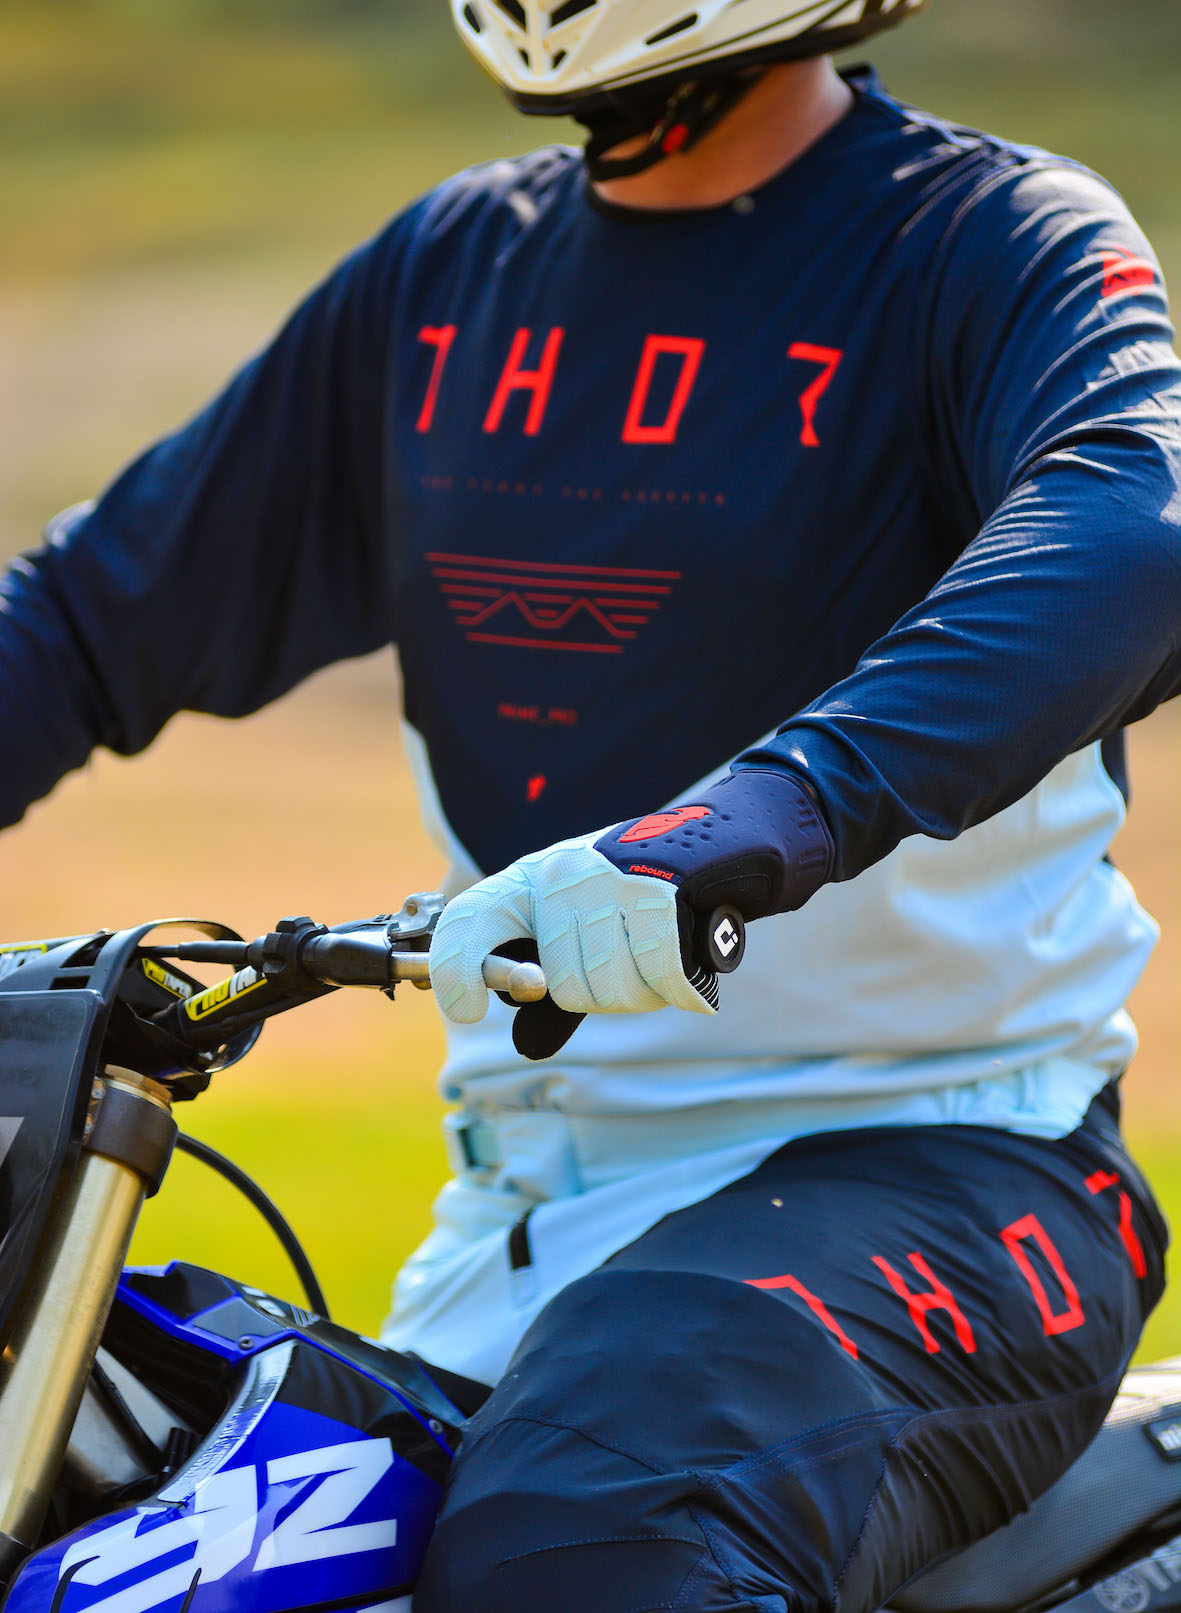 Introducing the all new 2019 Thor MX Prime Pro racewear